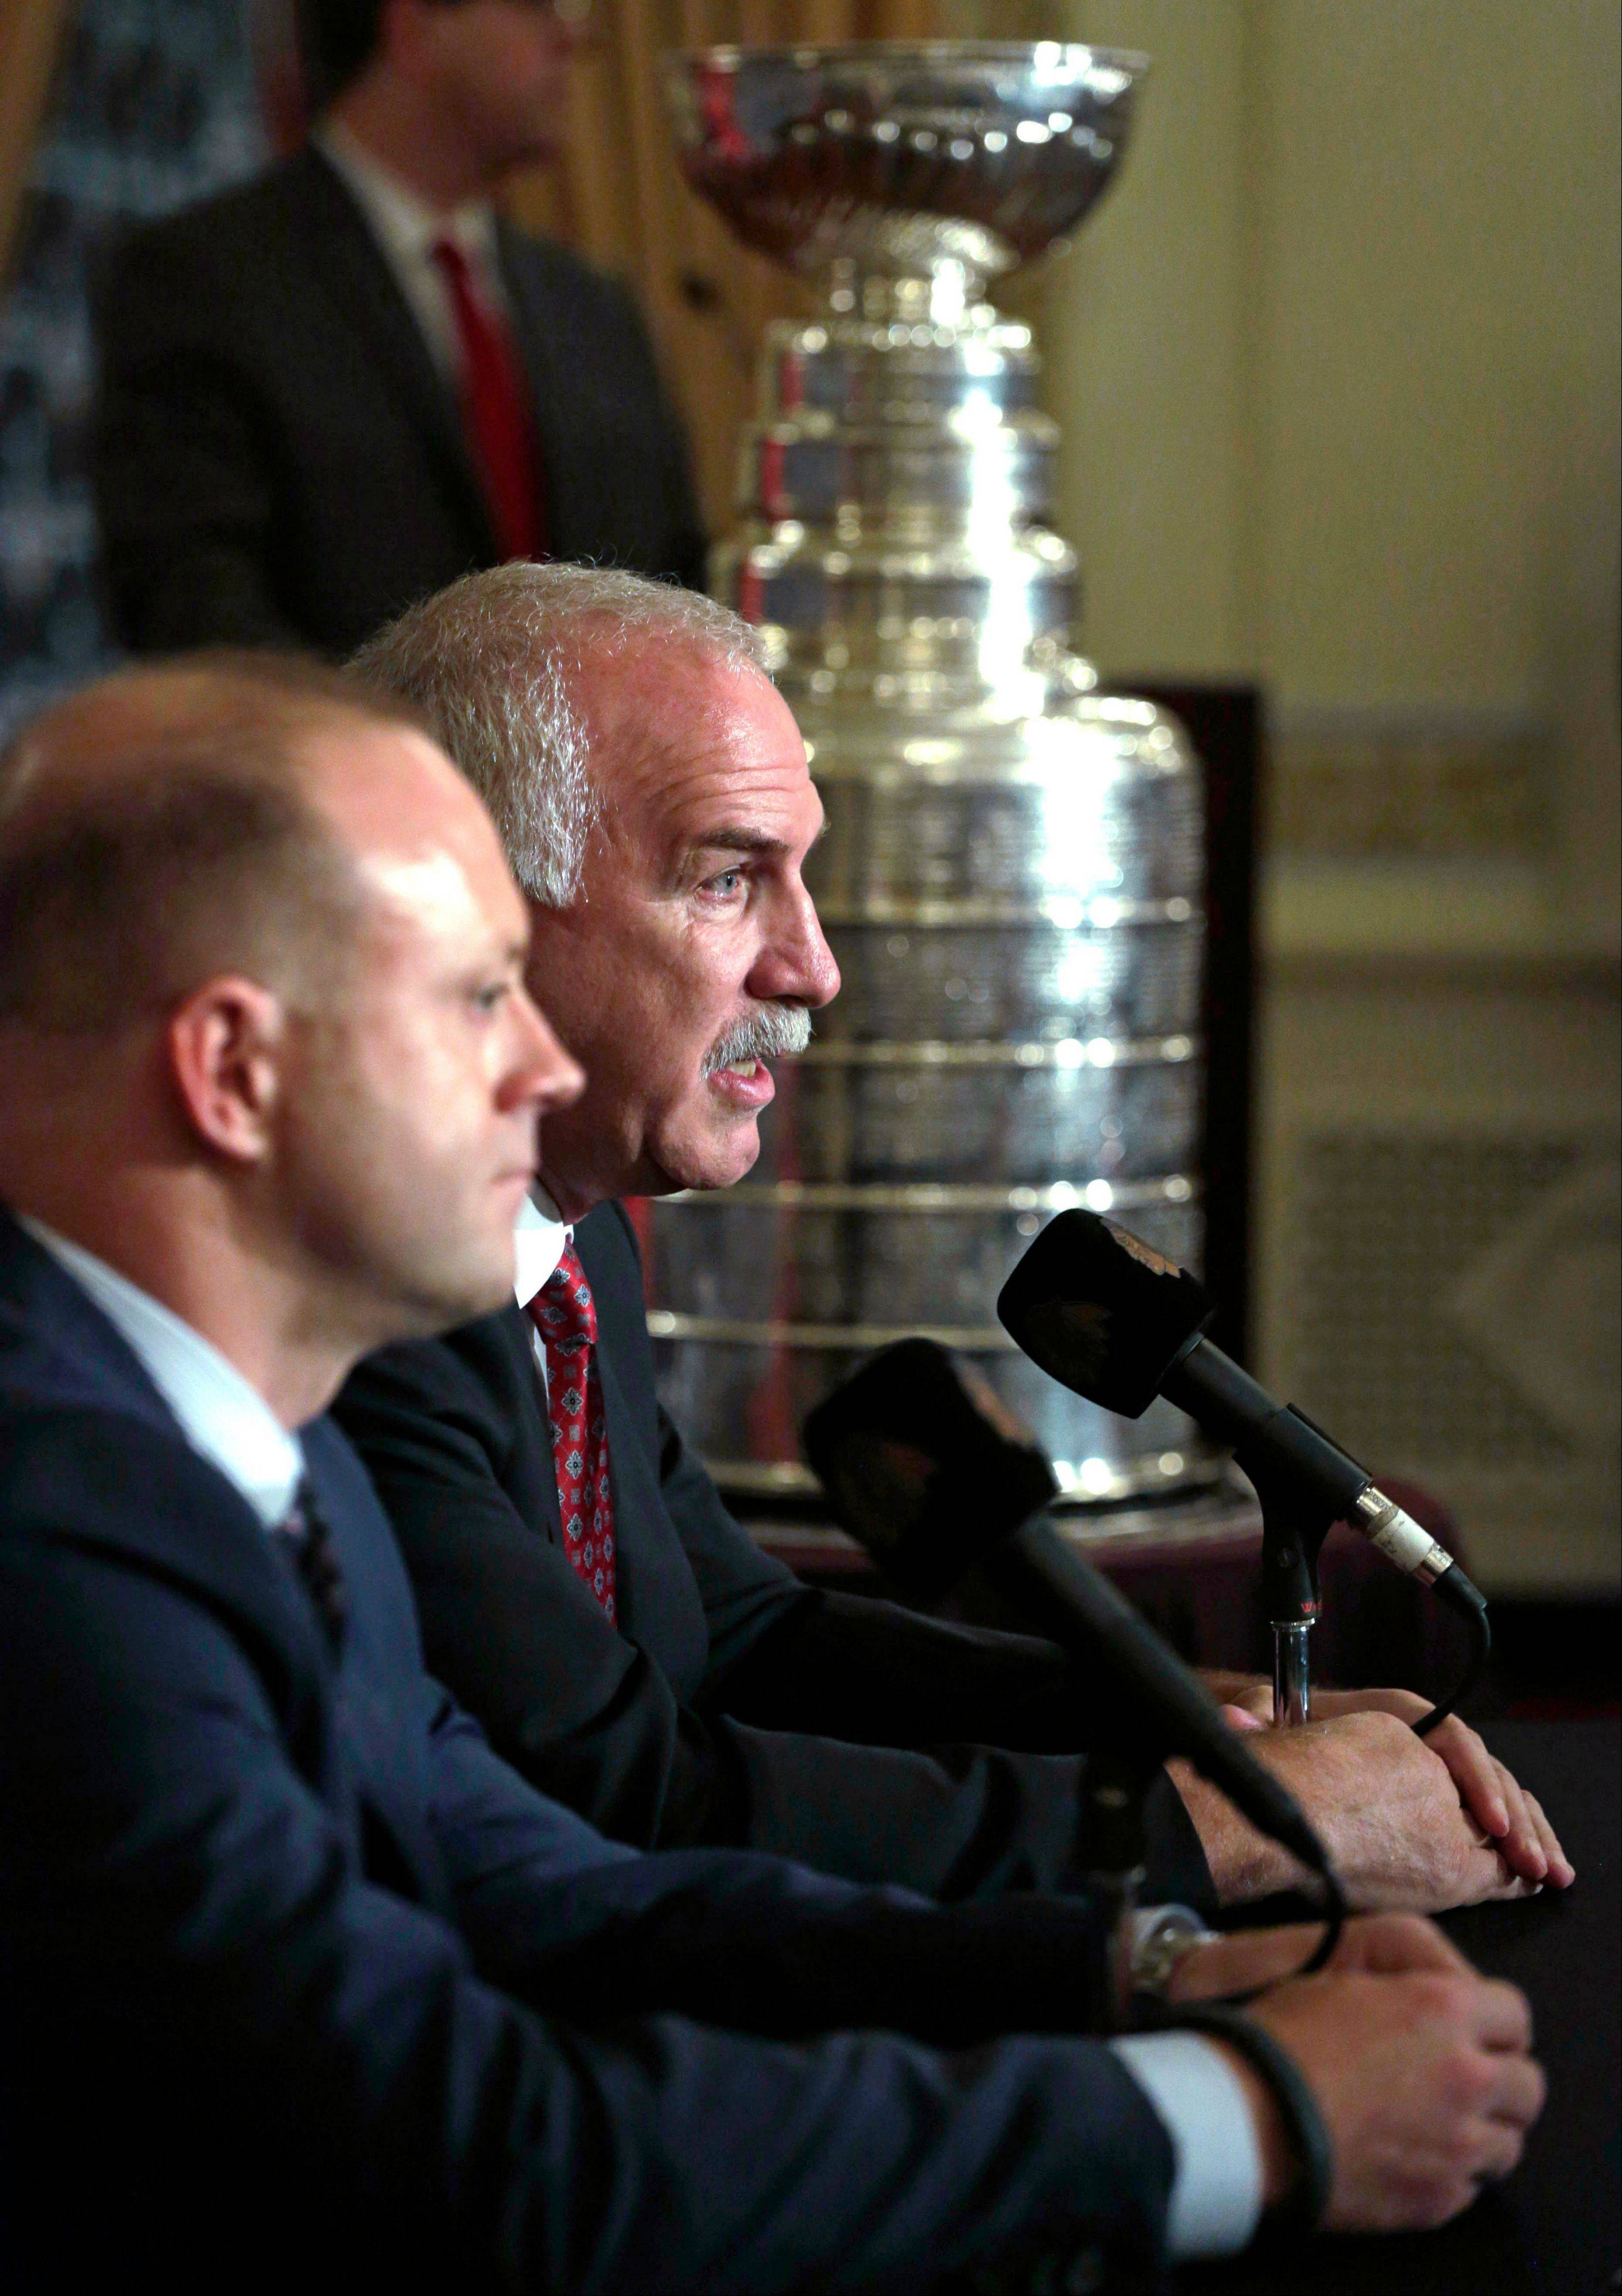 Blackhawks coach Joel Quenneville, right, and general manager Stan Bowman appear at a news conference during the sixth annual Blackhawks Convention.